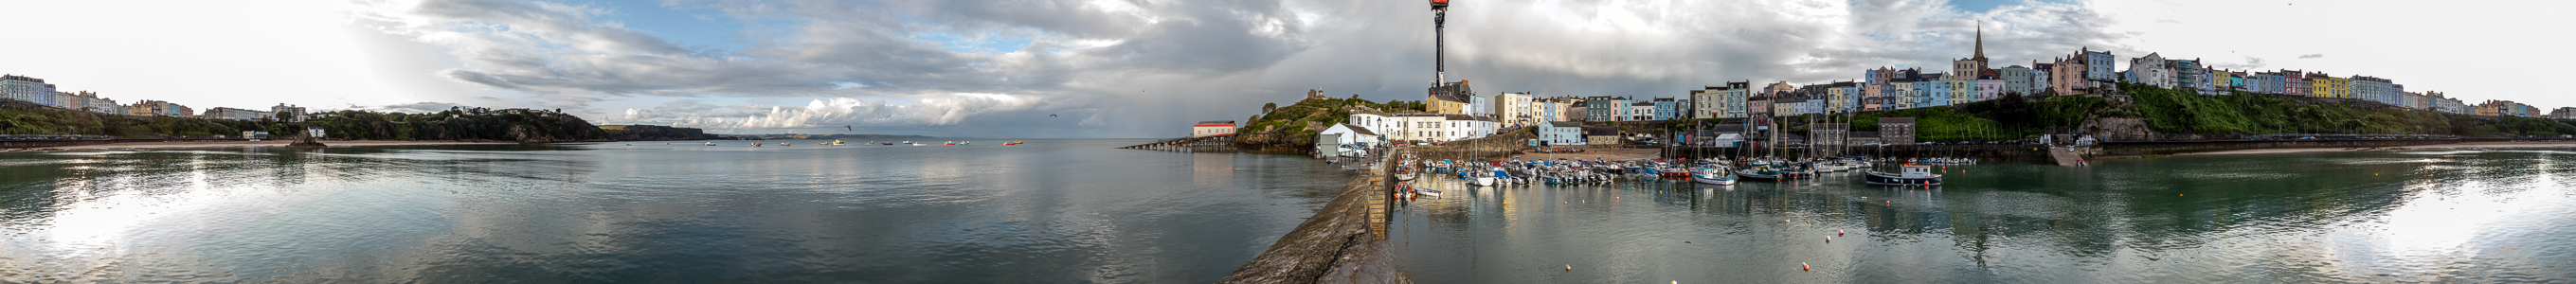 Carmarthen Bay, Castle Hill, Tenby Harbour